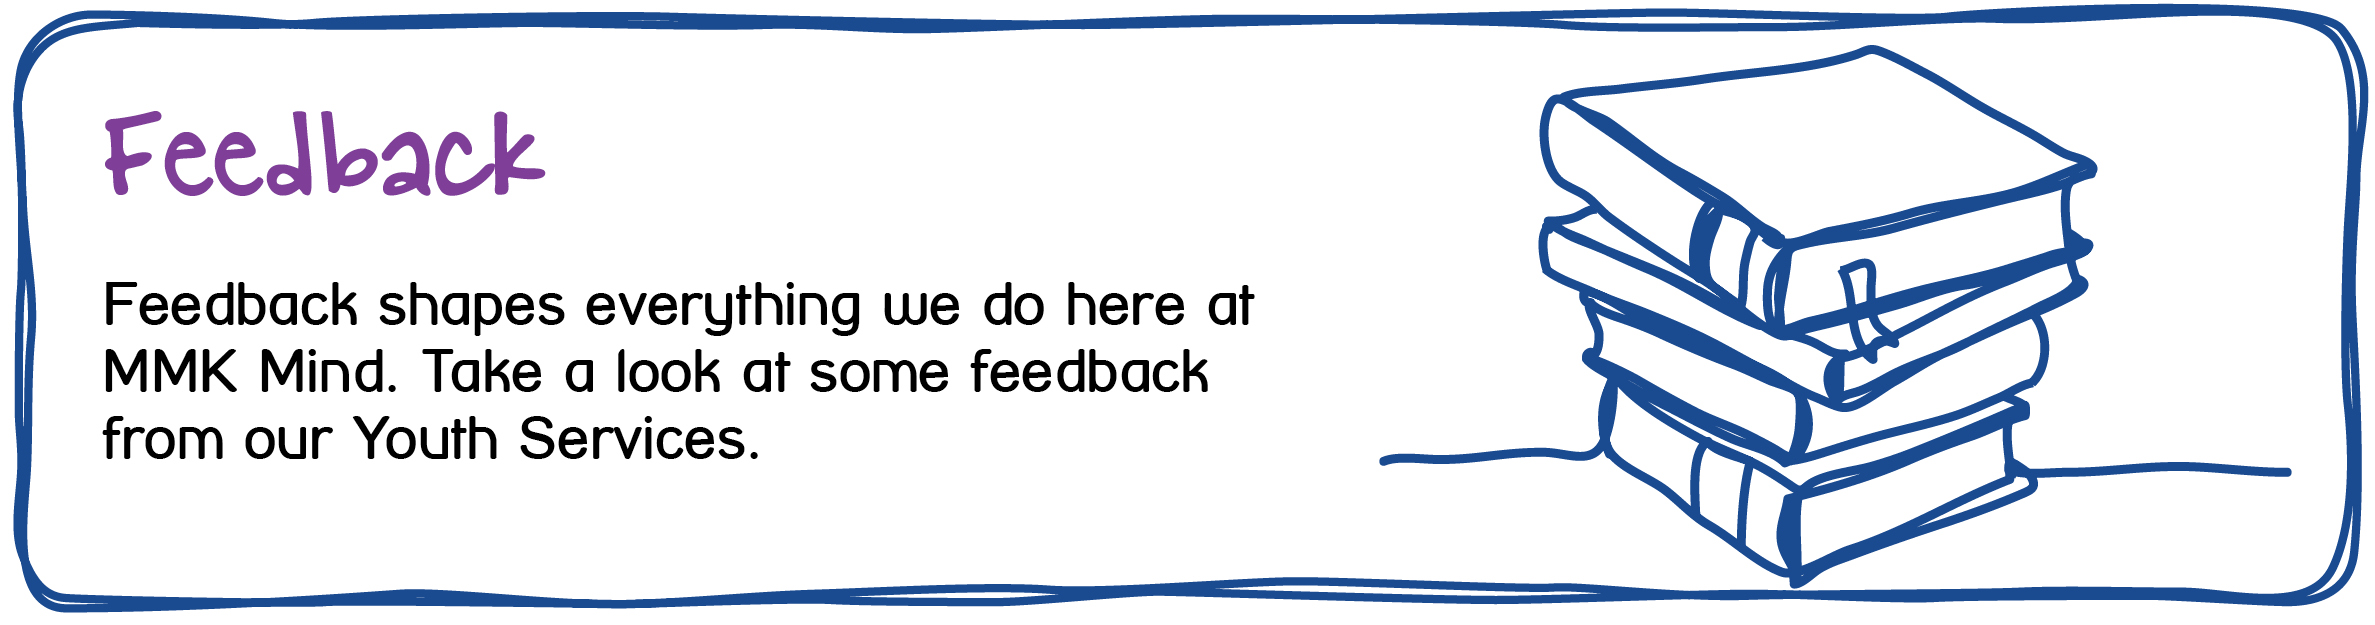 Youth Services - Feedback - Read some feedback of MMK Mind's Youth Courses.